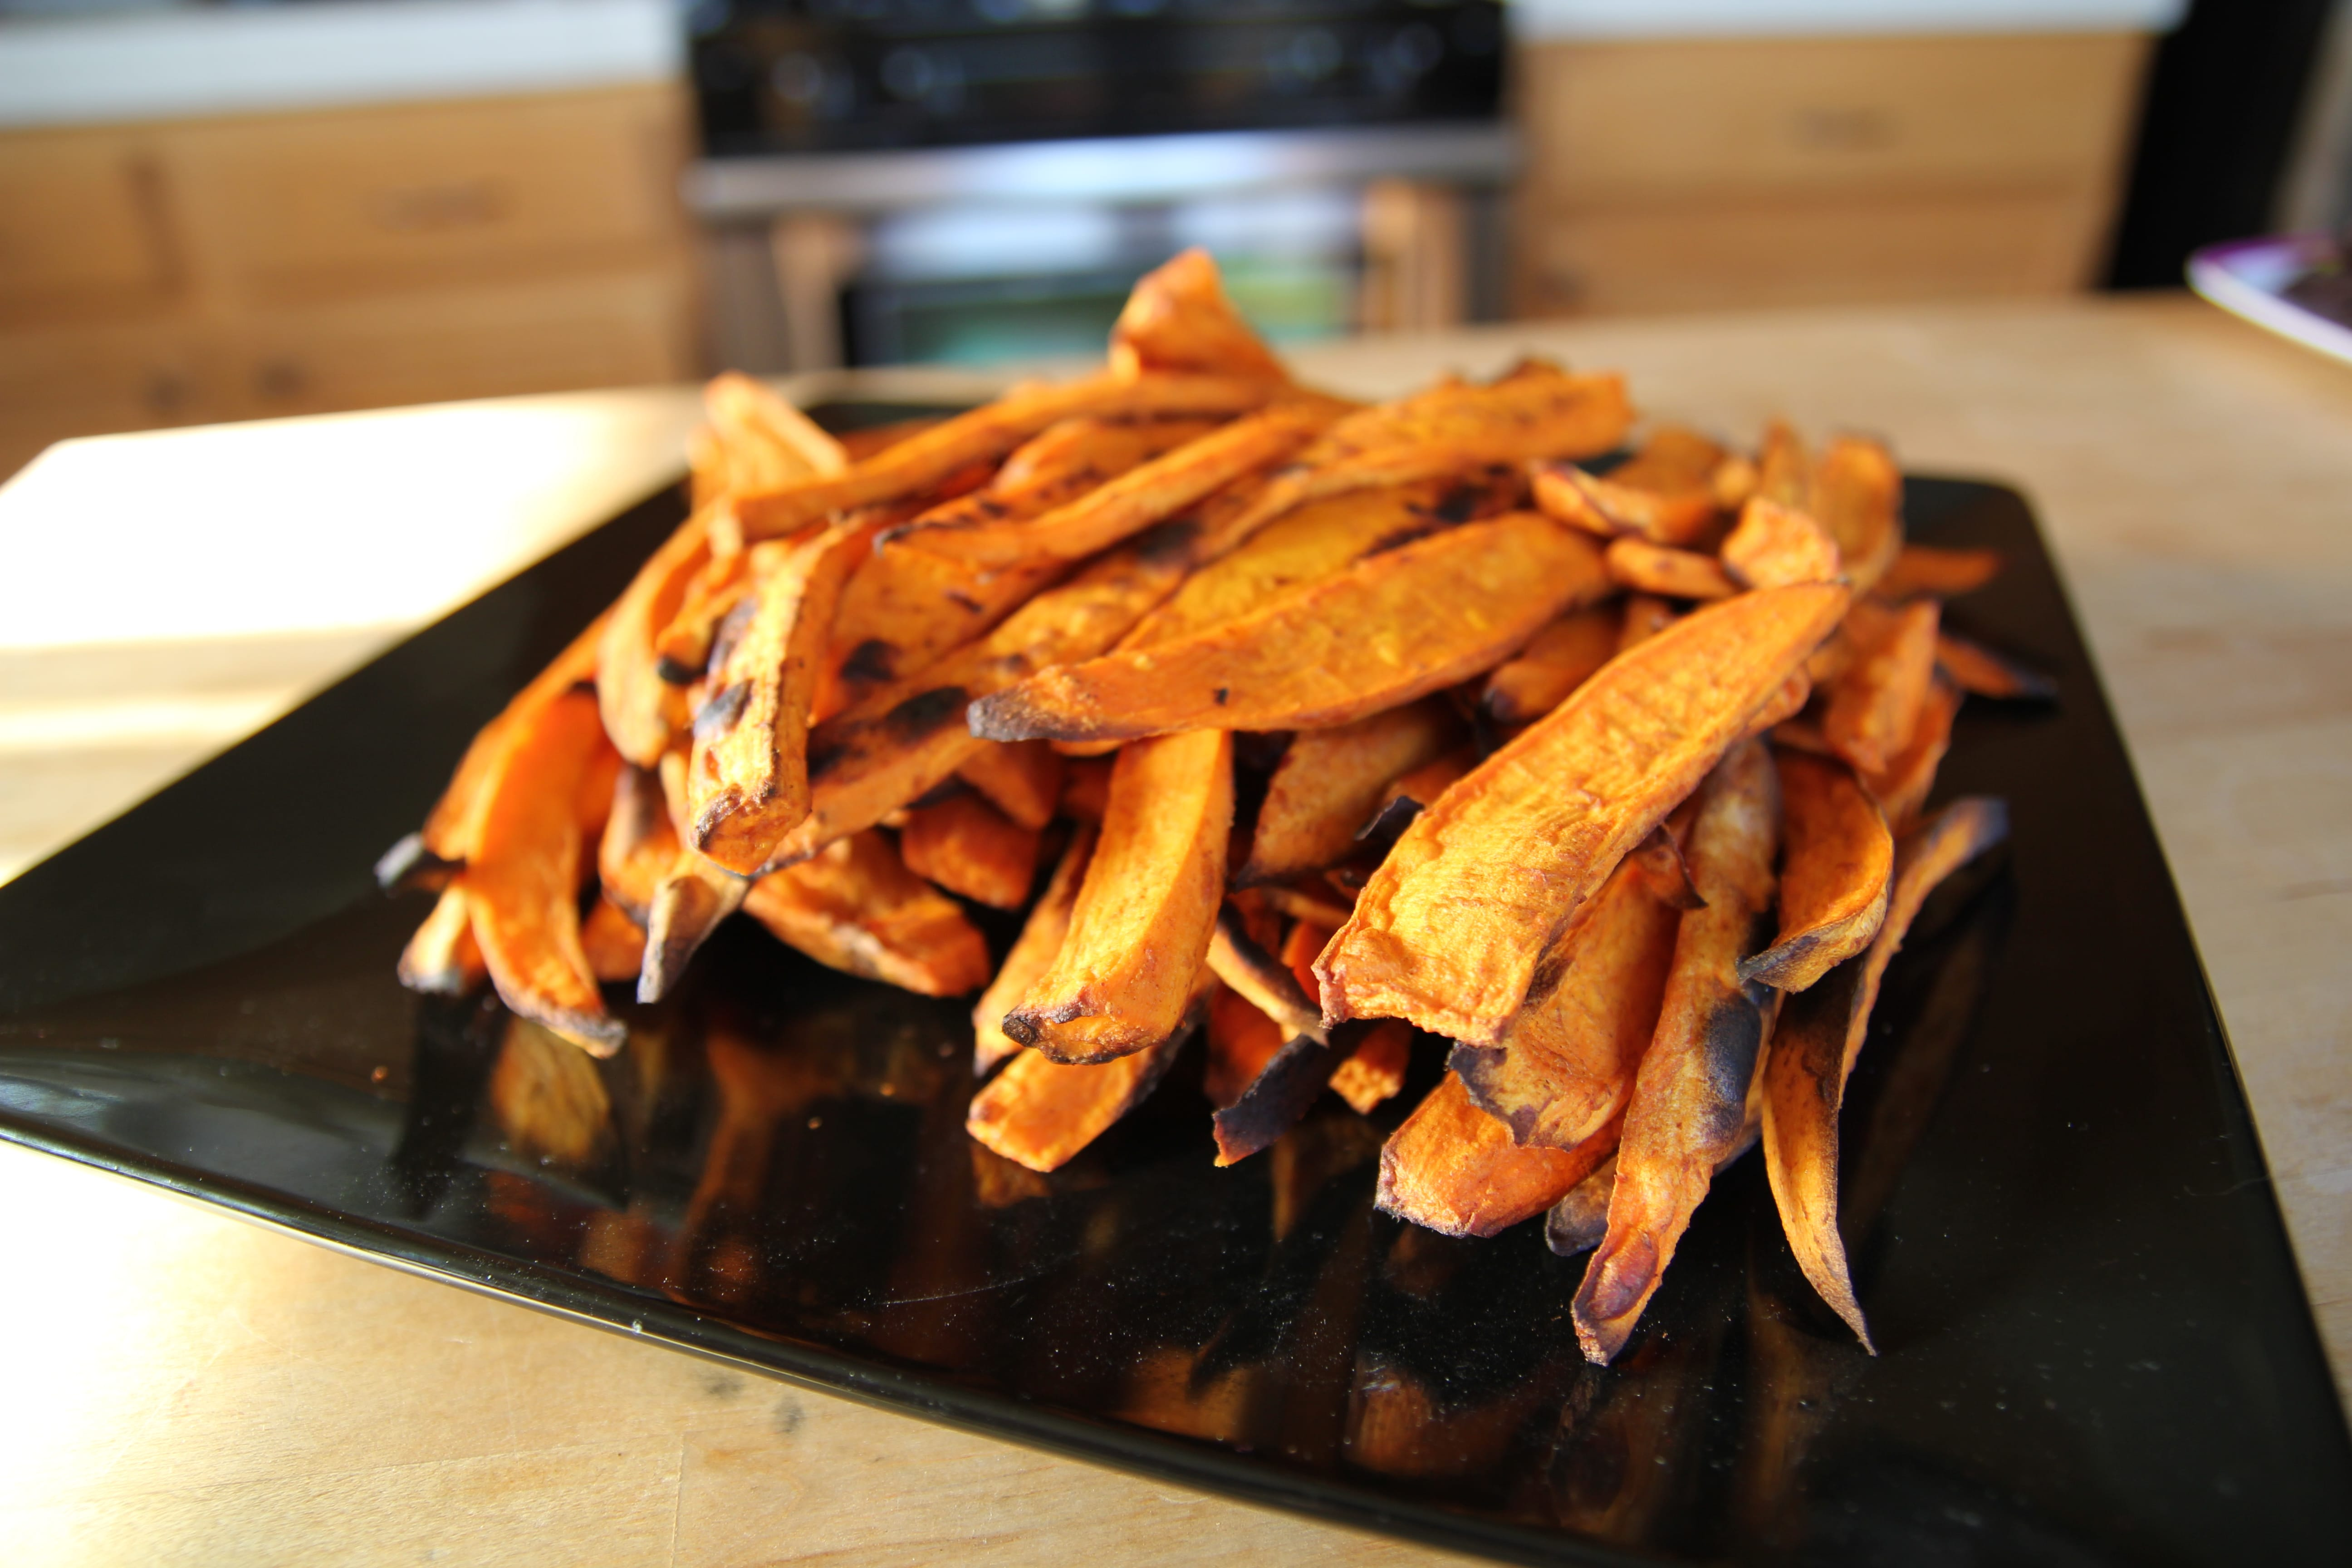 These Paleo Sweet Potato Fries are coated with tangy stone ground mustard and oven-baked to perfection. Gluten-free and whole30 friendly.